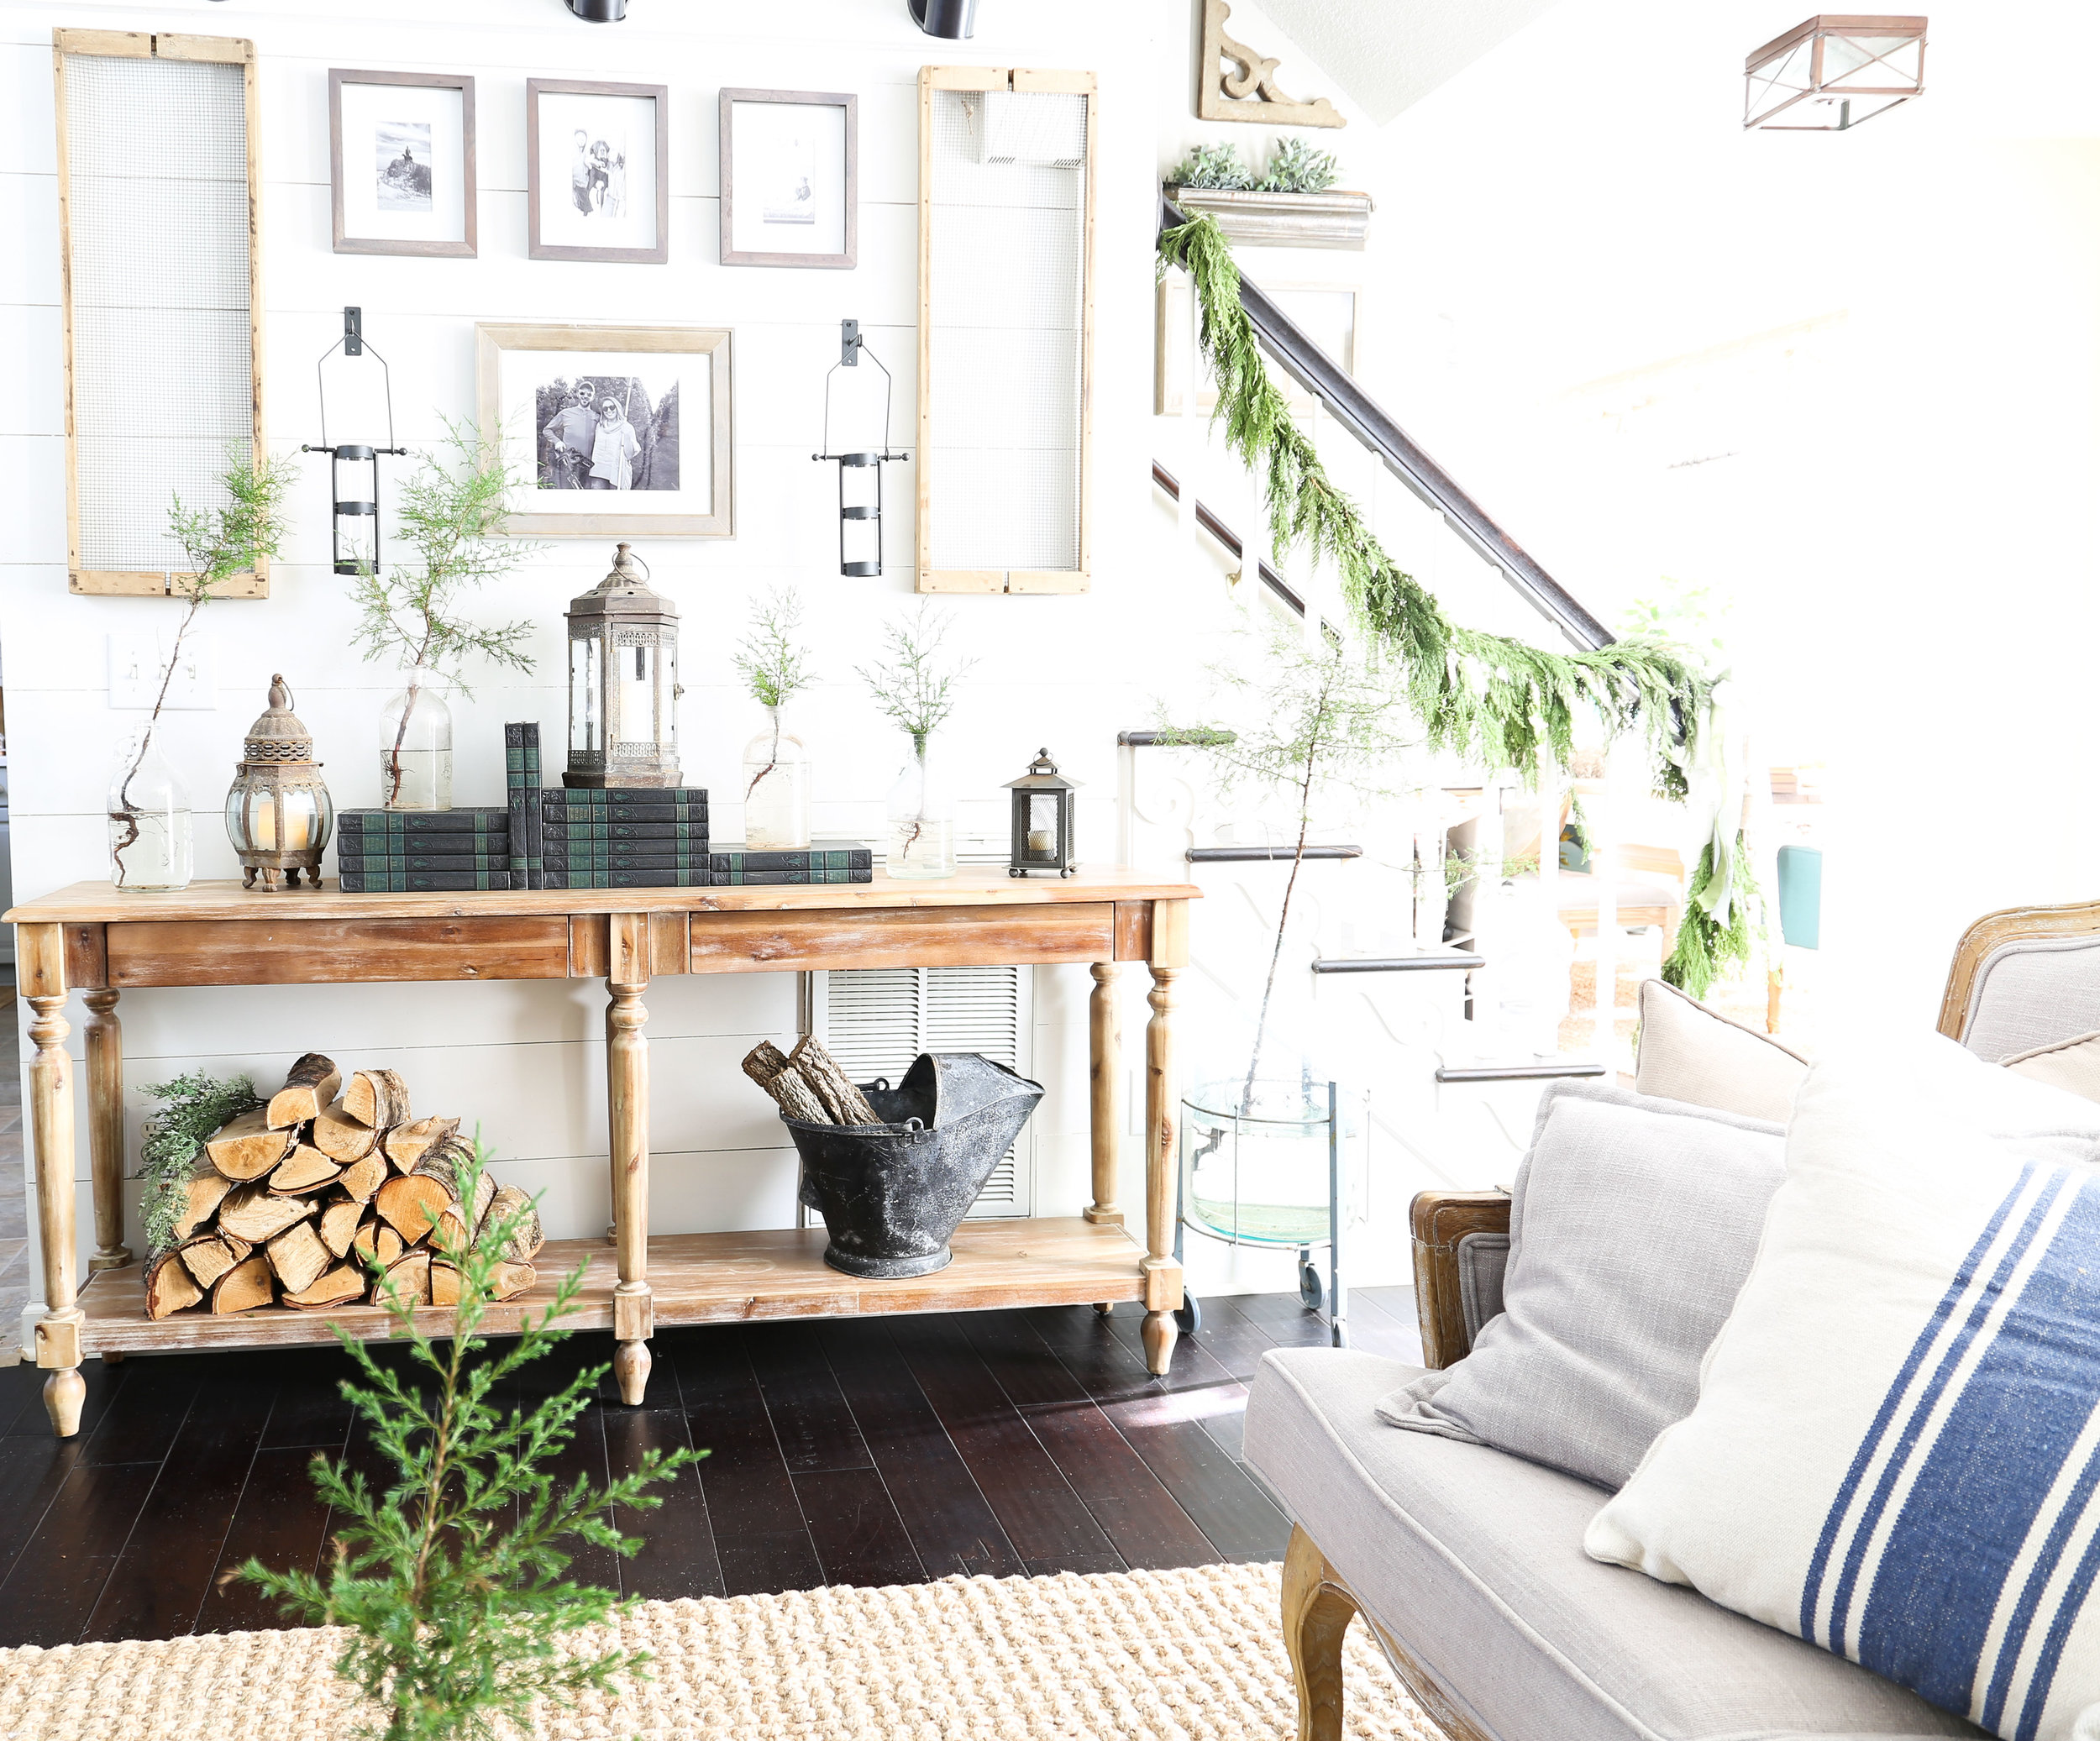 Christmas 2017 Home Tour: Deck The Blogs- Styled Everett Console Table Books and Wood- Plum Pretty Decor & Design's Christmas Home Tour